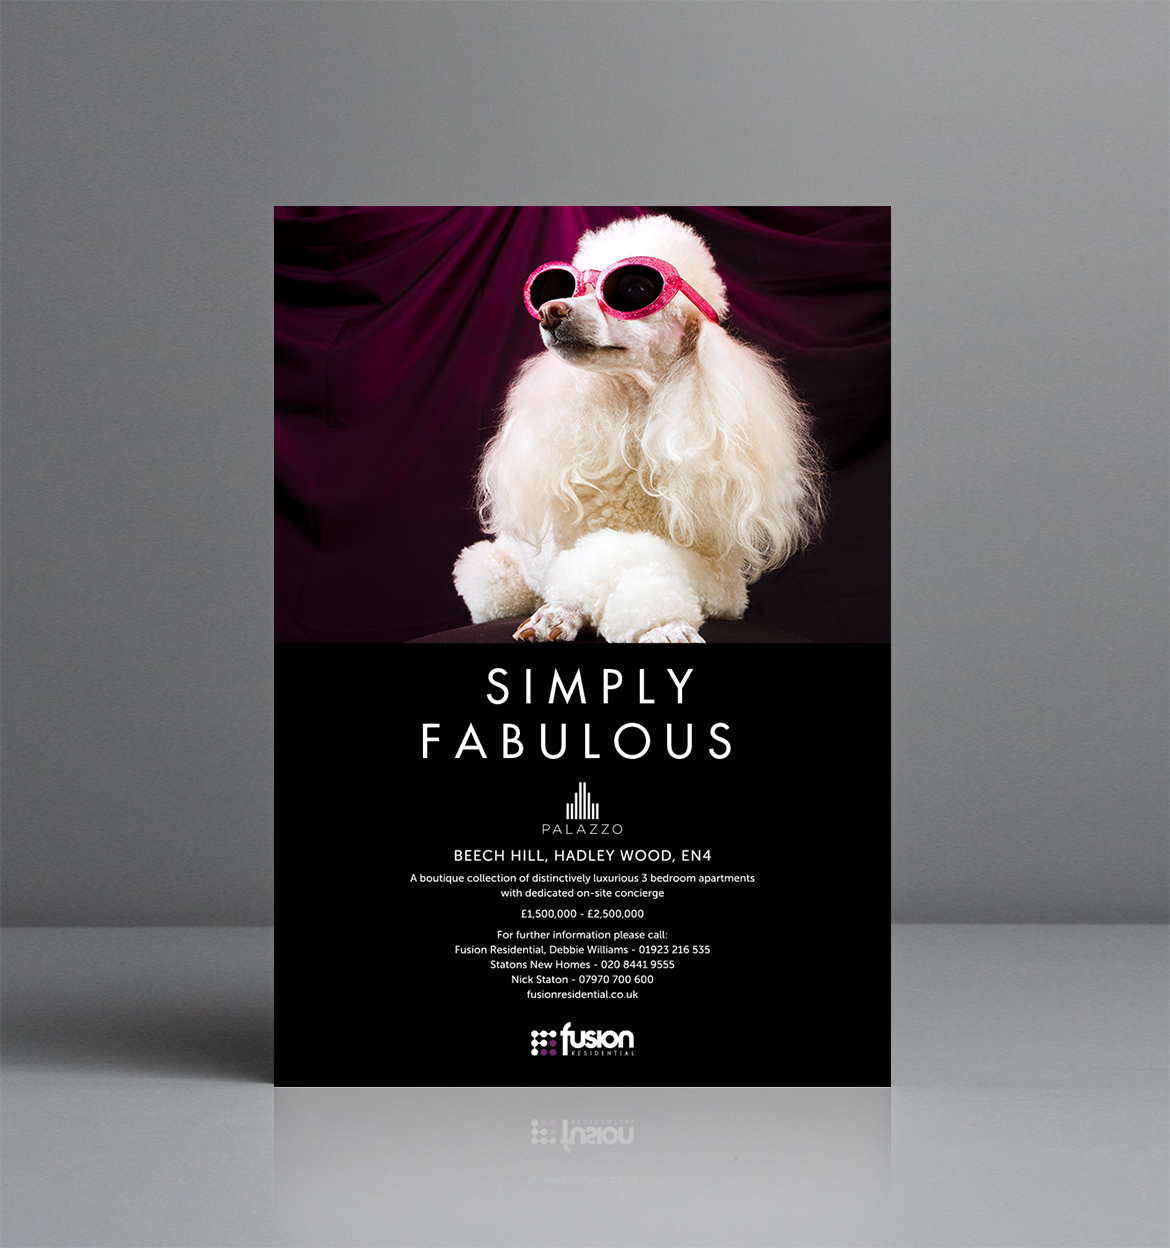 SimplayFabulous_doggy_aloneposter_02 copy